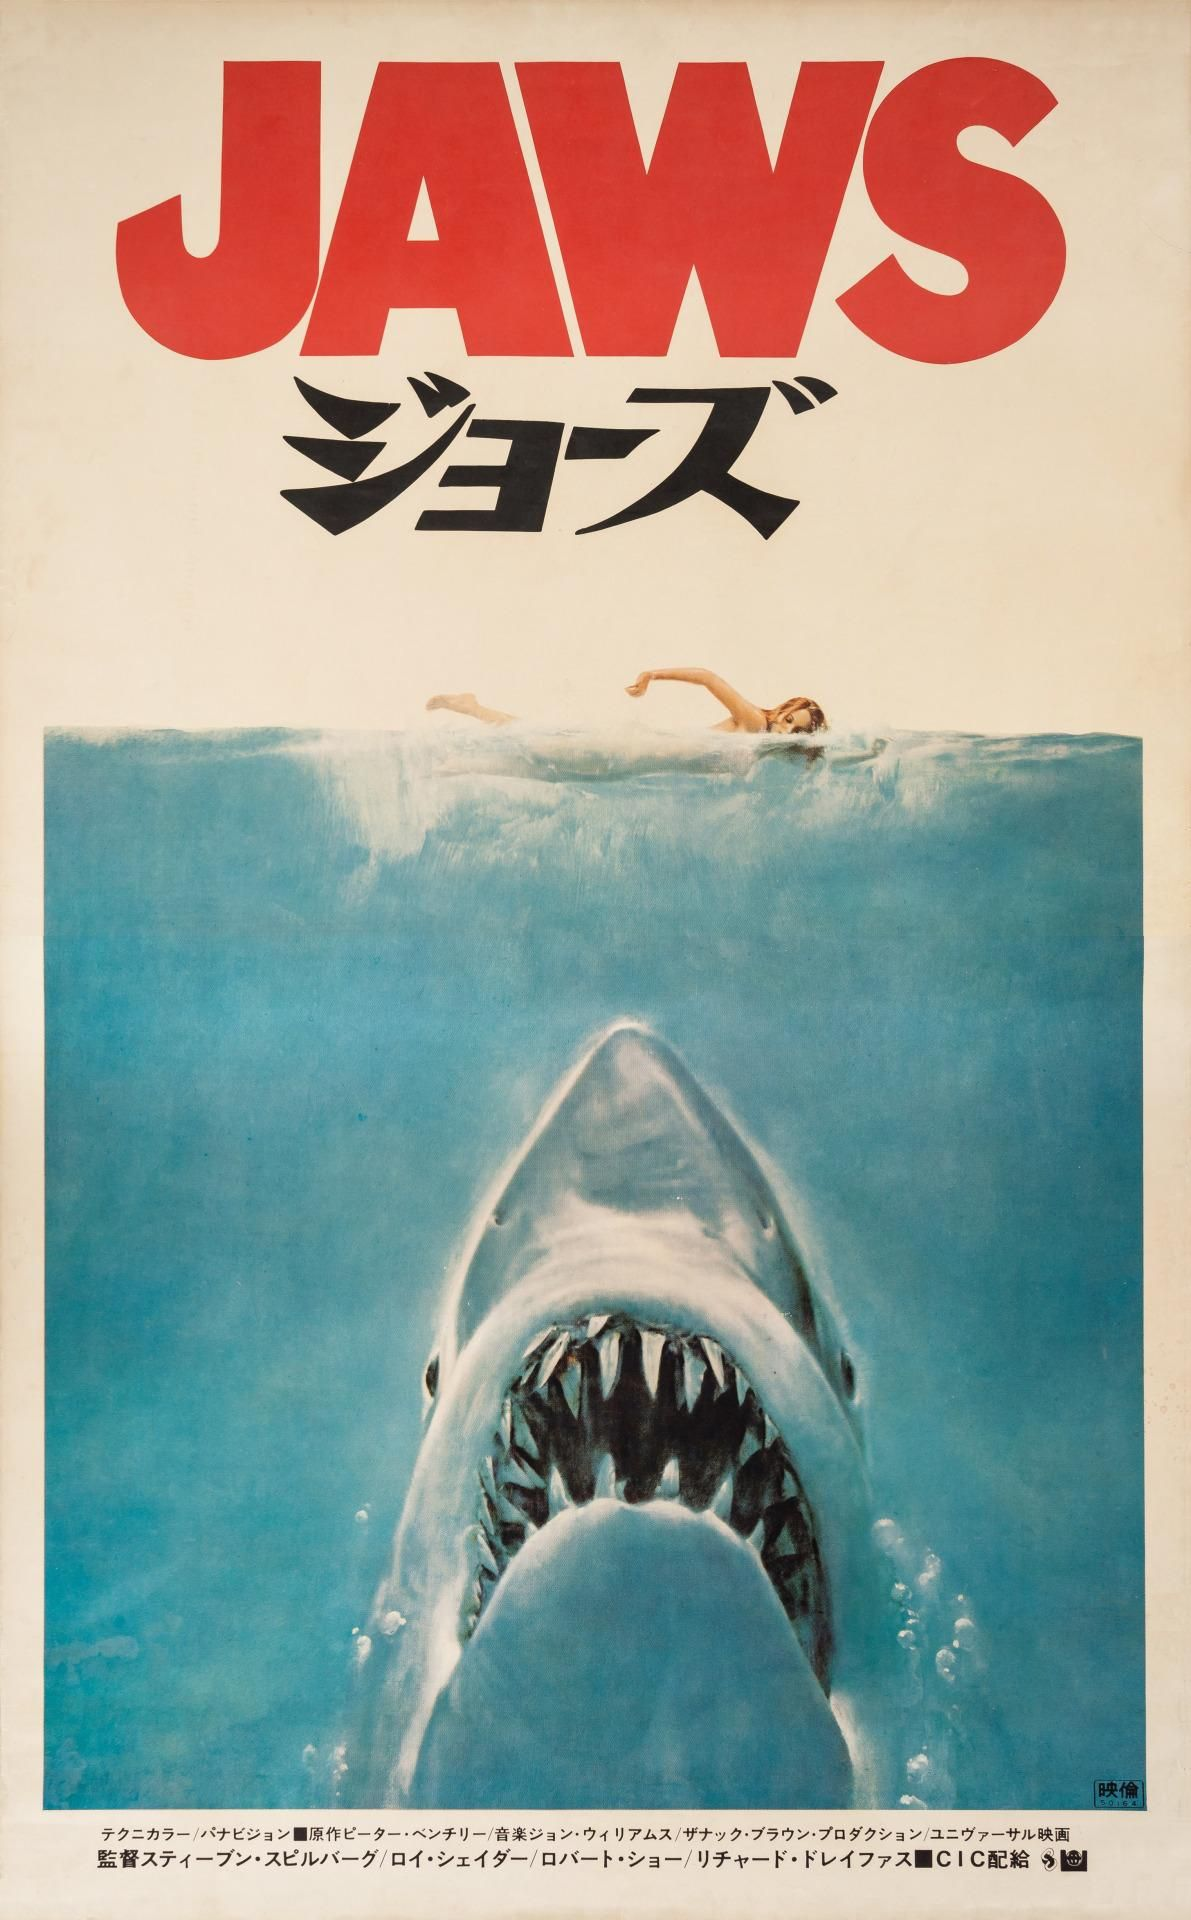 Jaws 1975 1191 X 1920 Japanese Poster Japanese Movie Poster Movie Posters